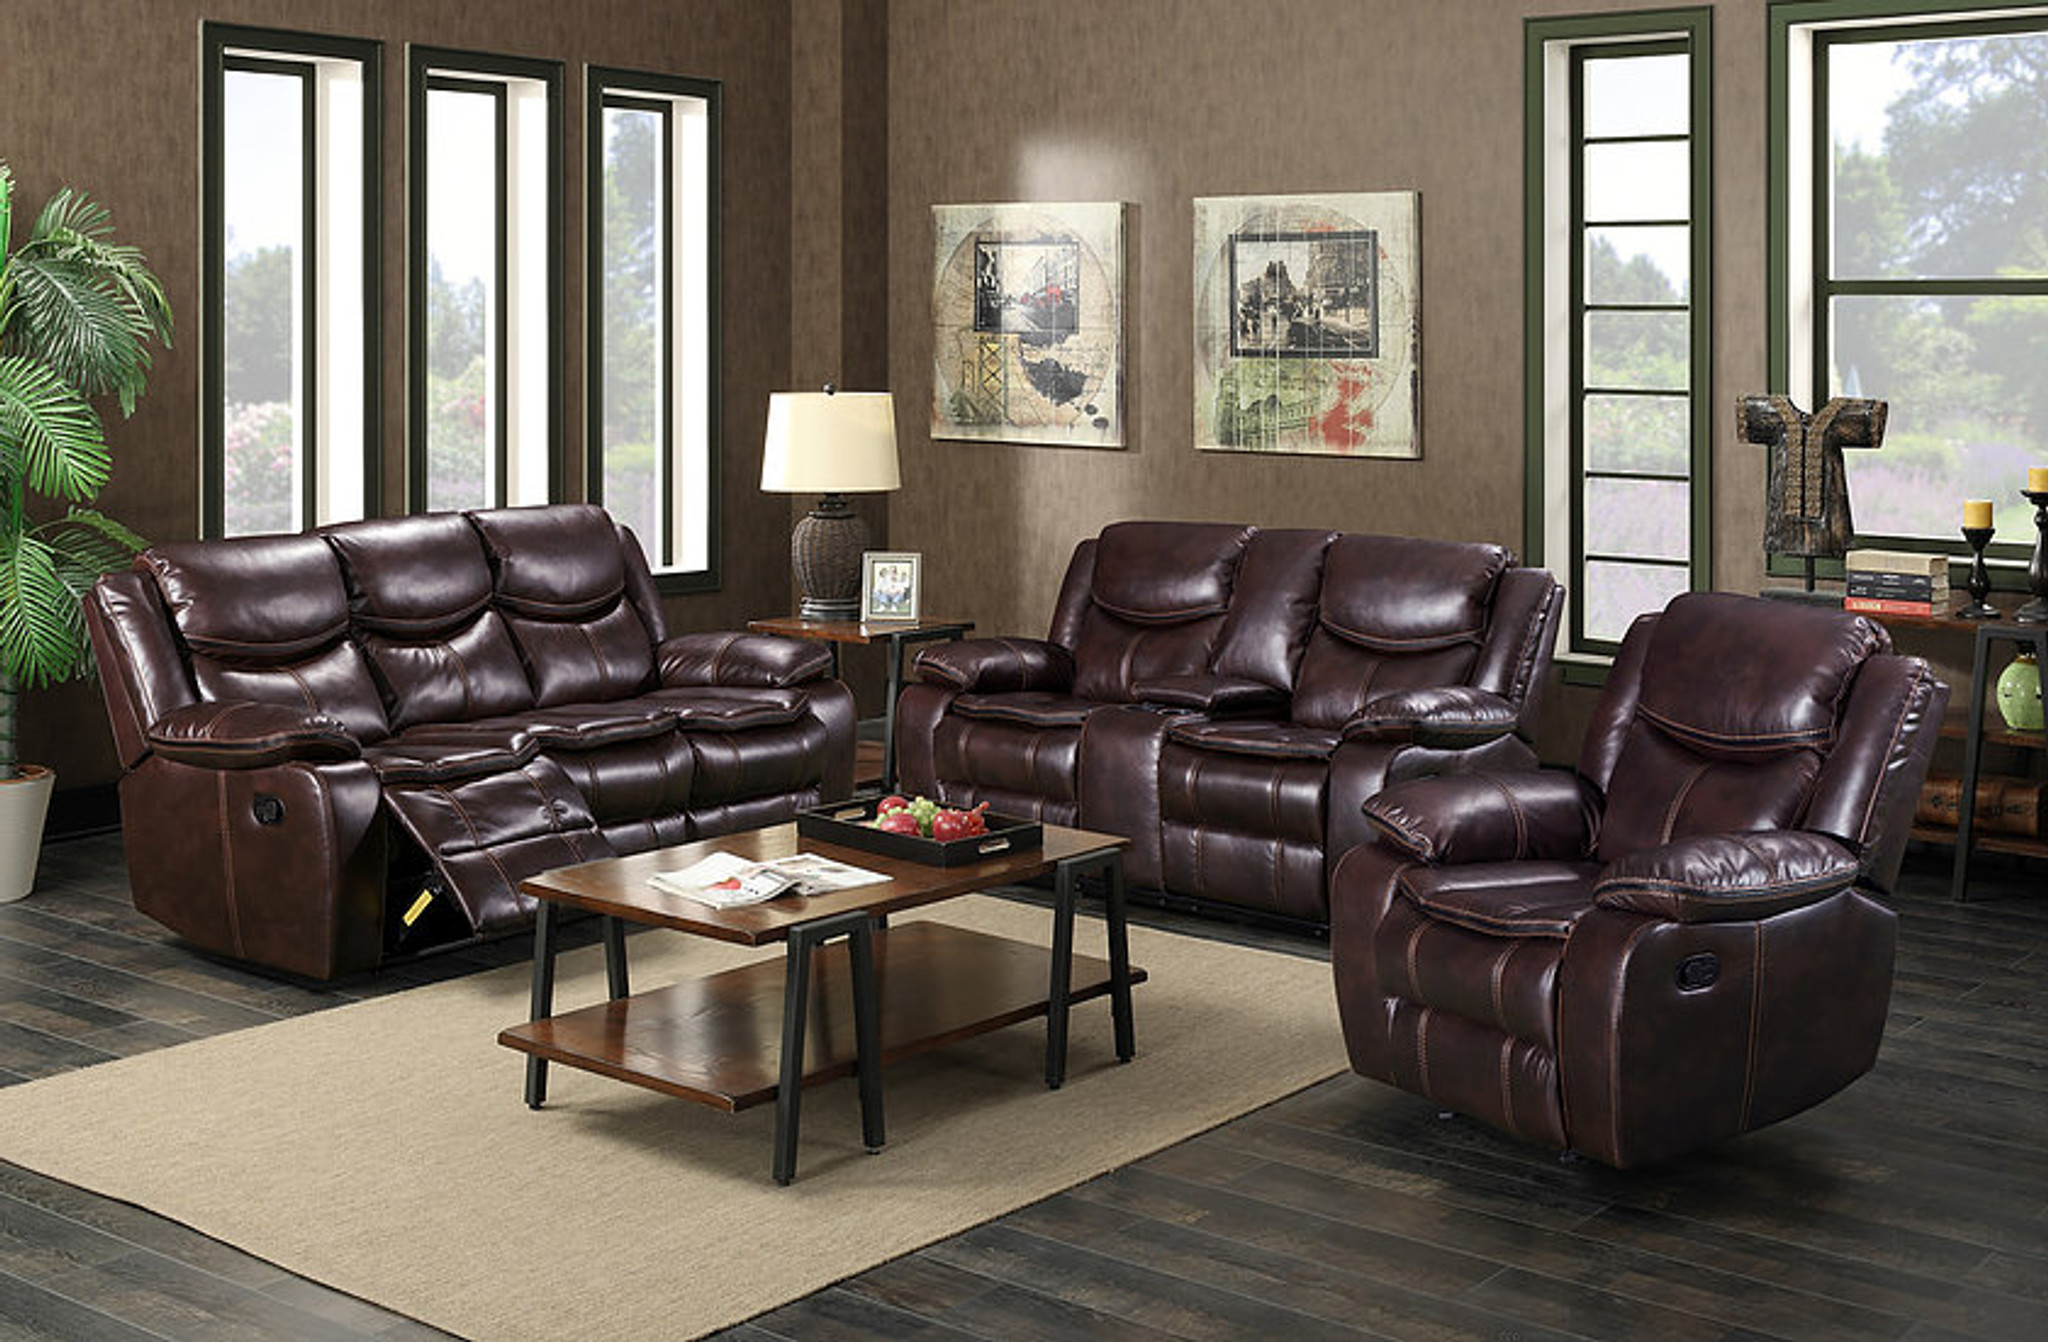 Picture of: S3035 2pcs Liz Brown Reclining Sofa And Loveseat Set Collection By New Era